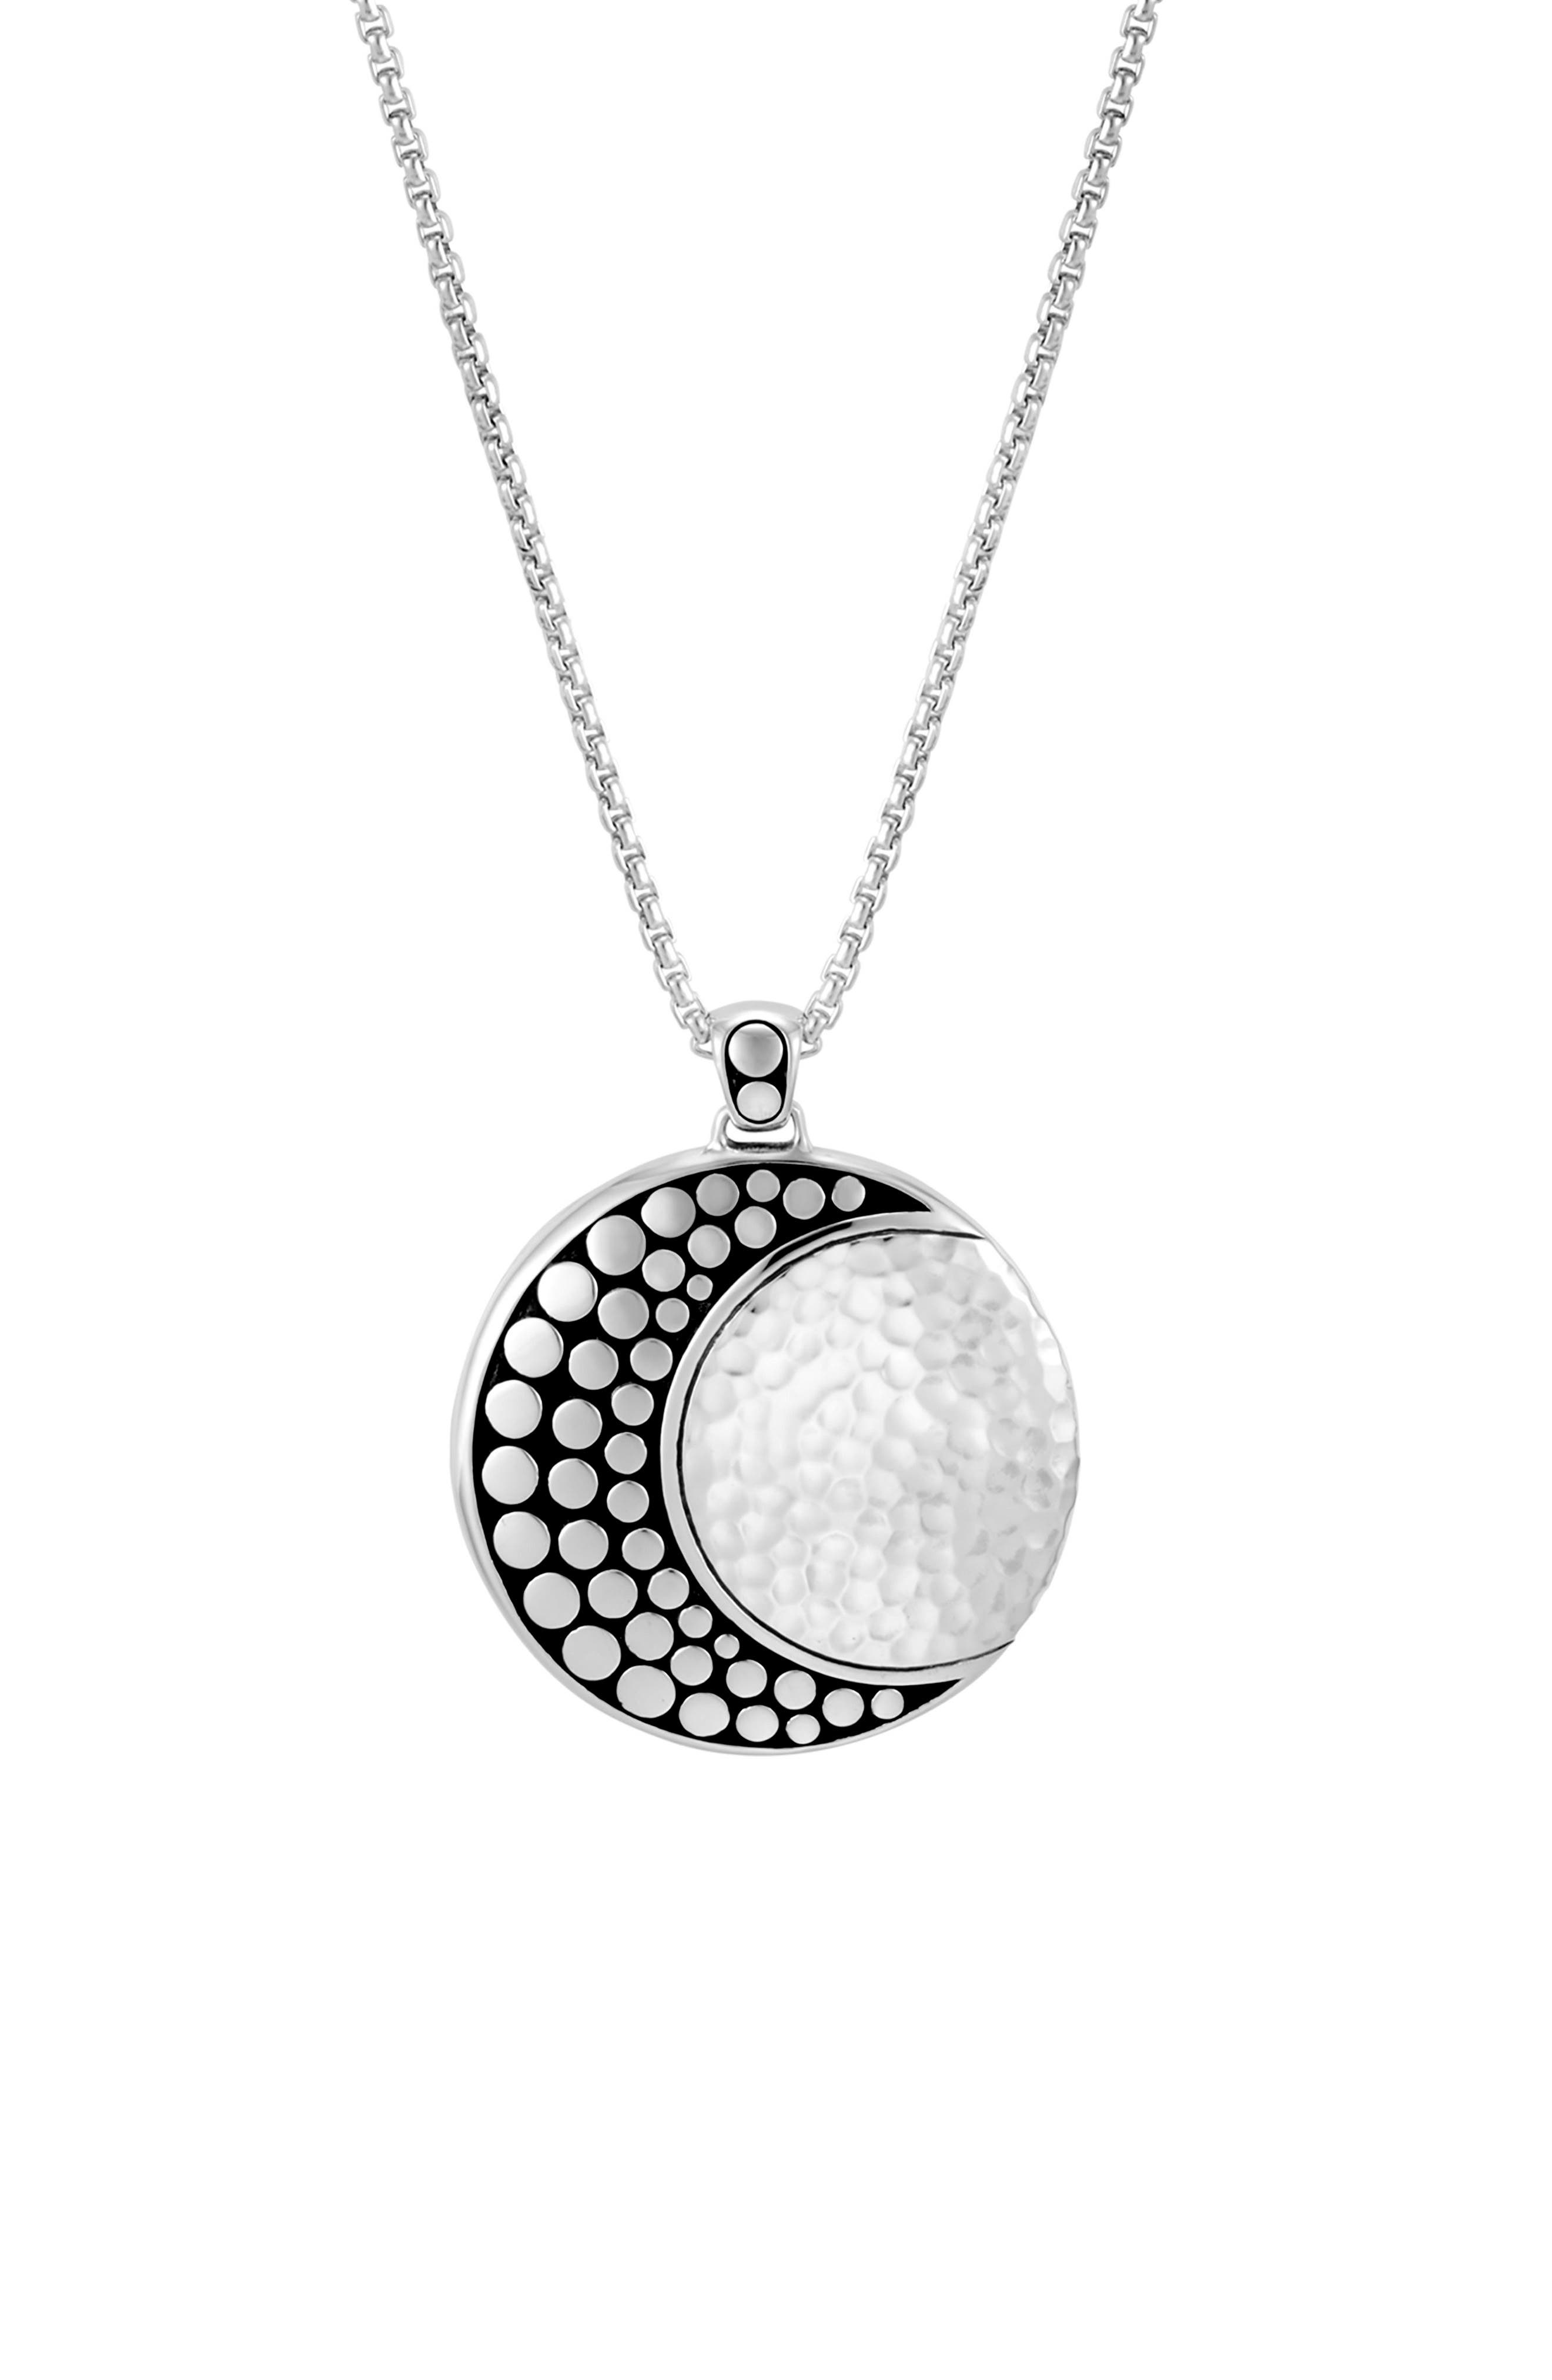 Hammered Dot Pendant Necklace,                             Alternate thumbnail 2, color,                             SILVER